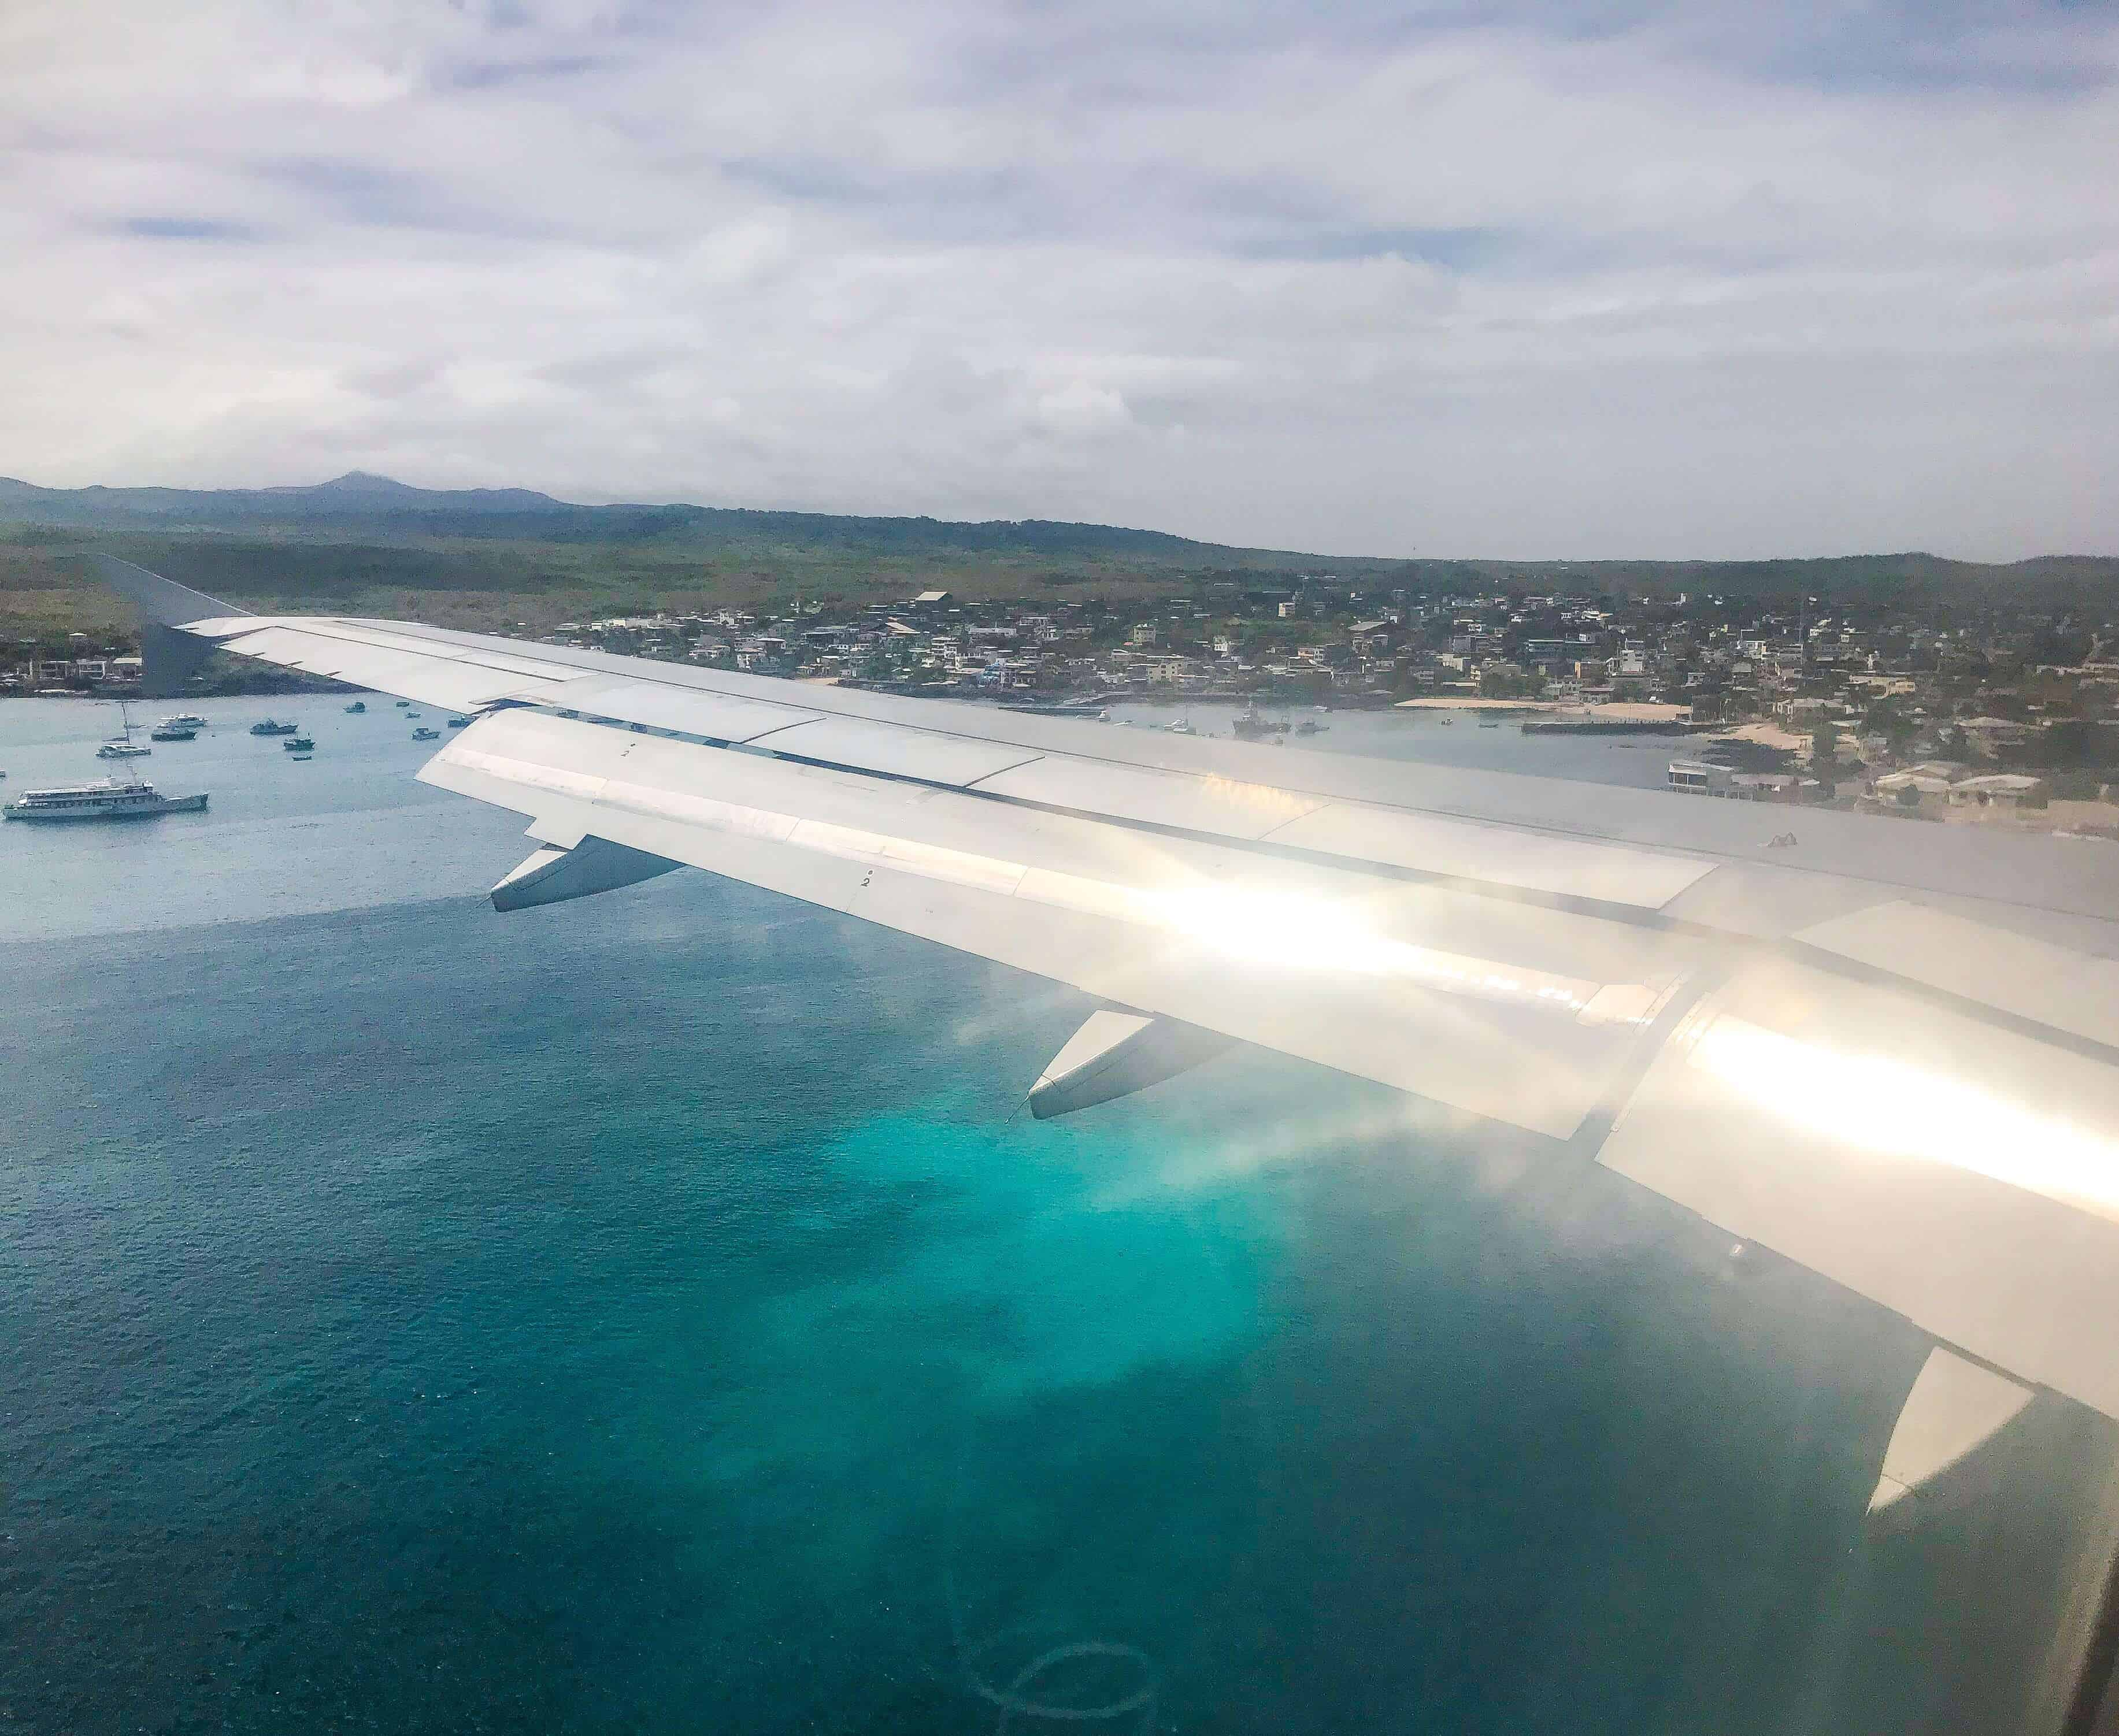 View from the plane descending on the Galapagos